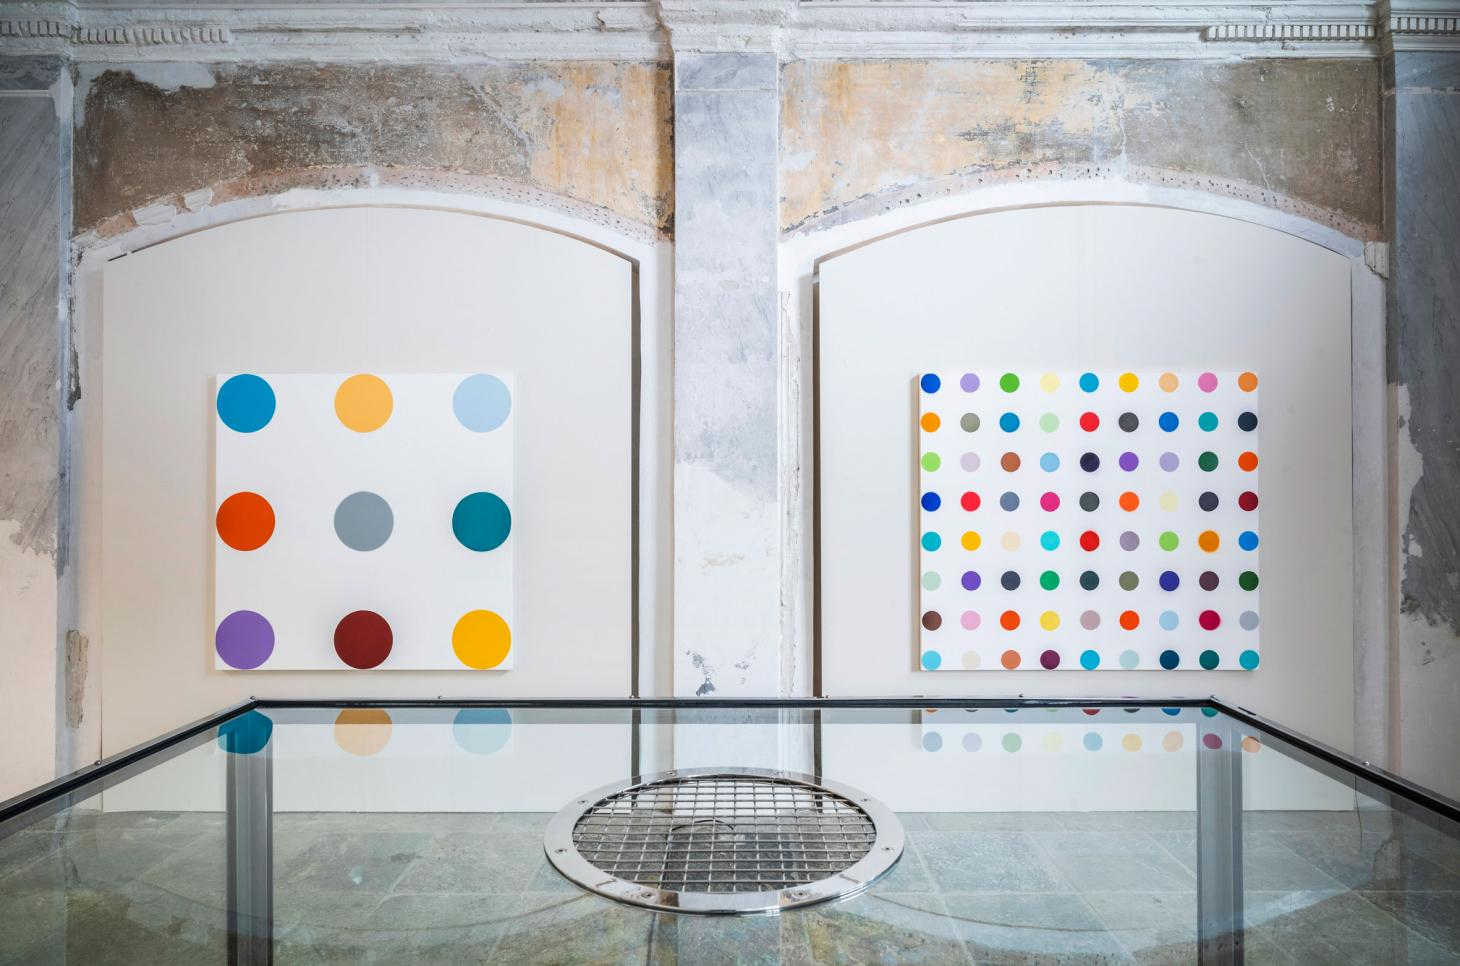 Photography from the Mental Escapology exhibition by Damien Hirst at the Forum Parcelsus in St. Moritz, 2021